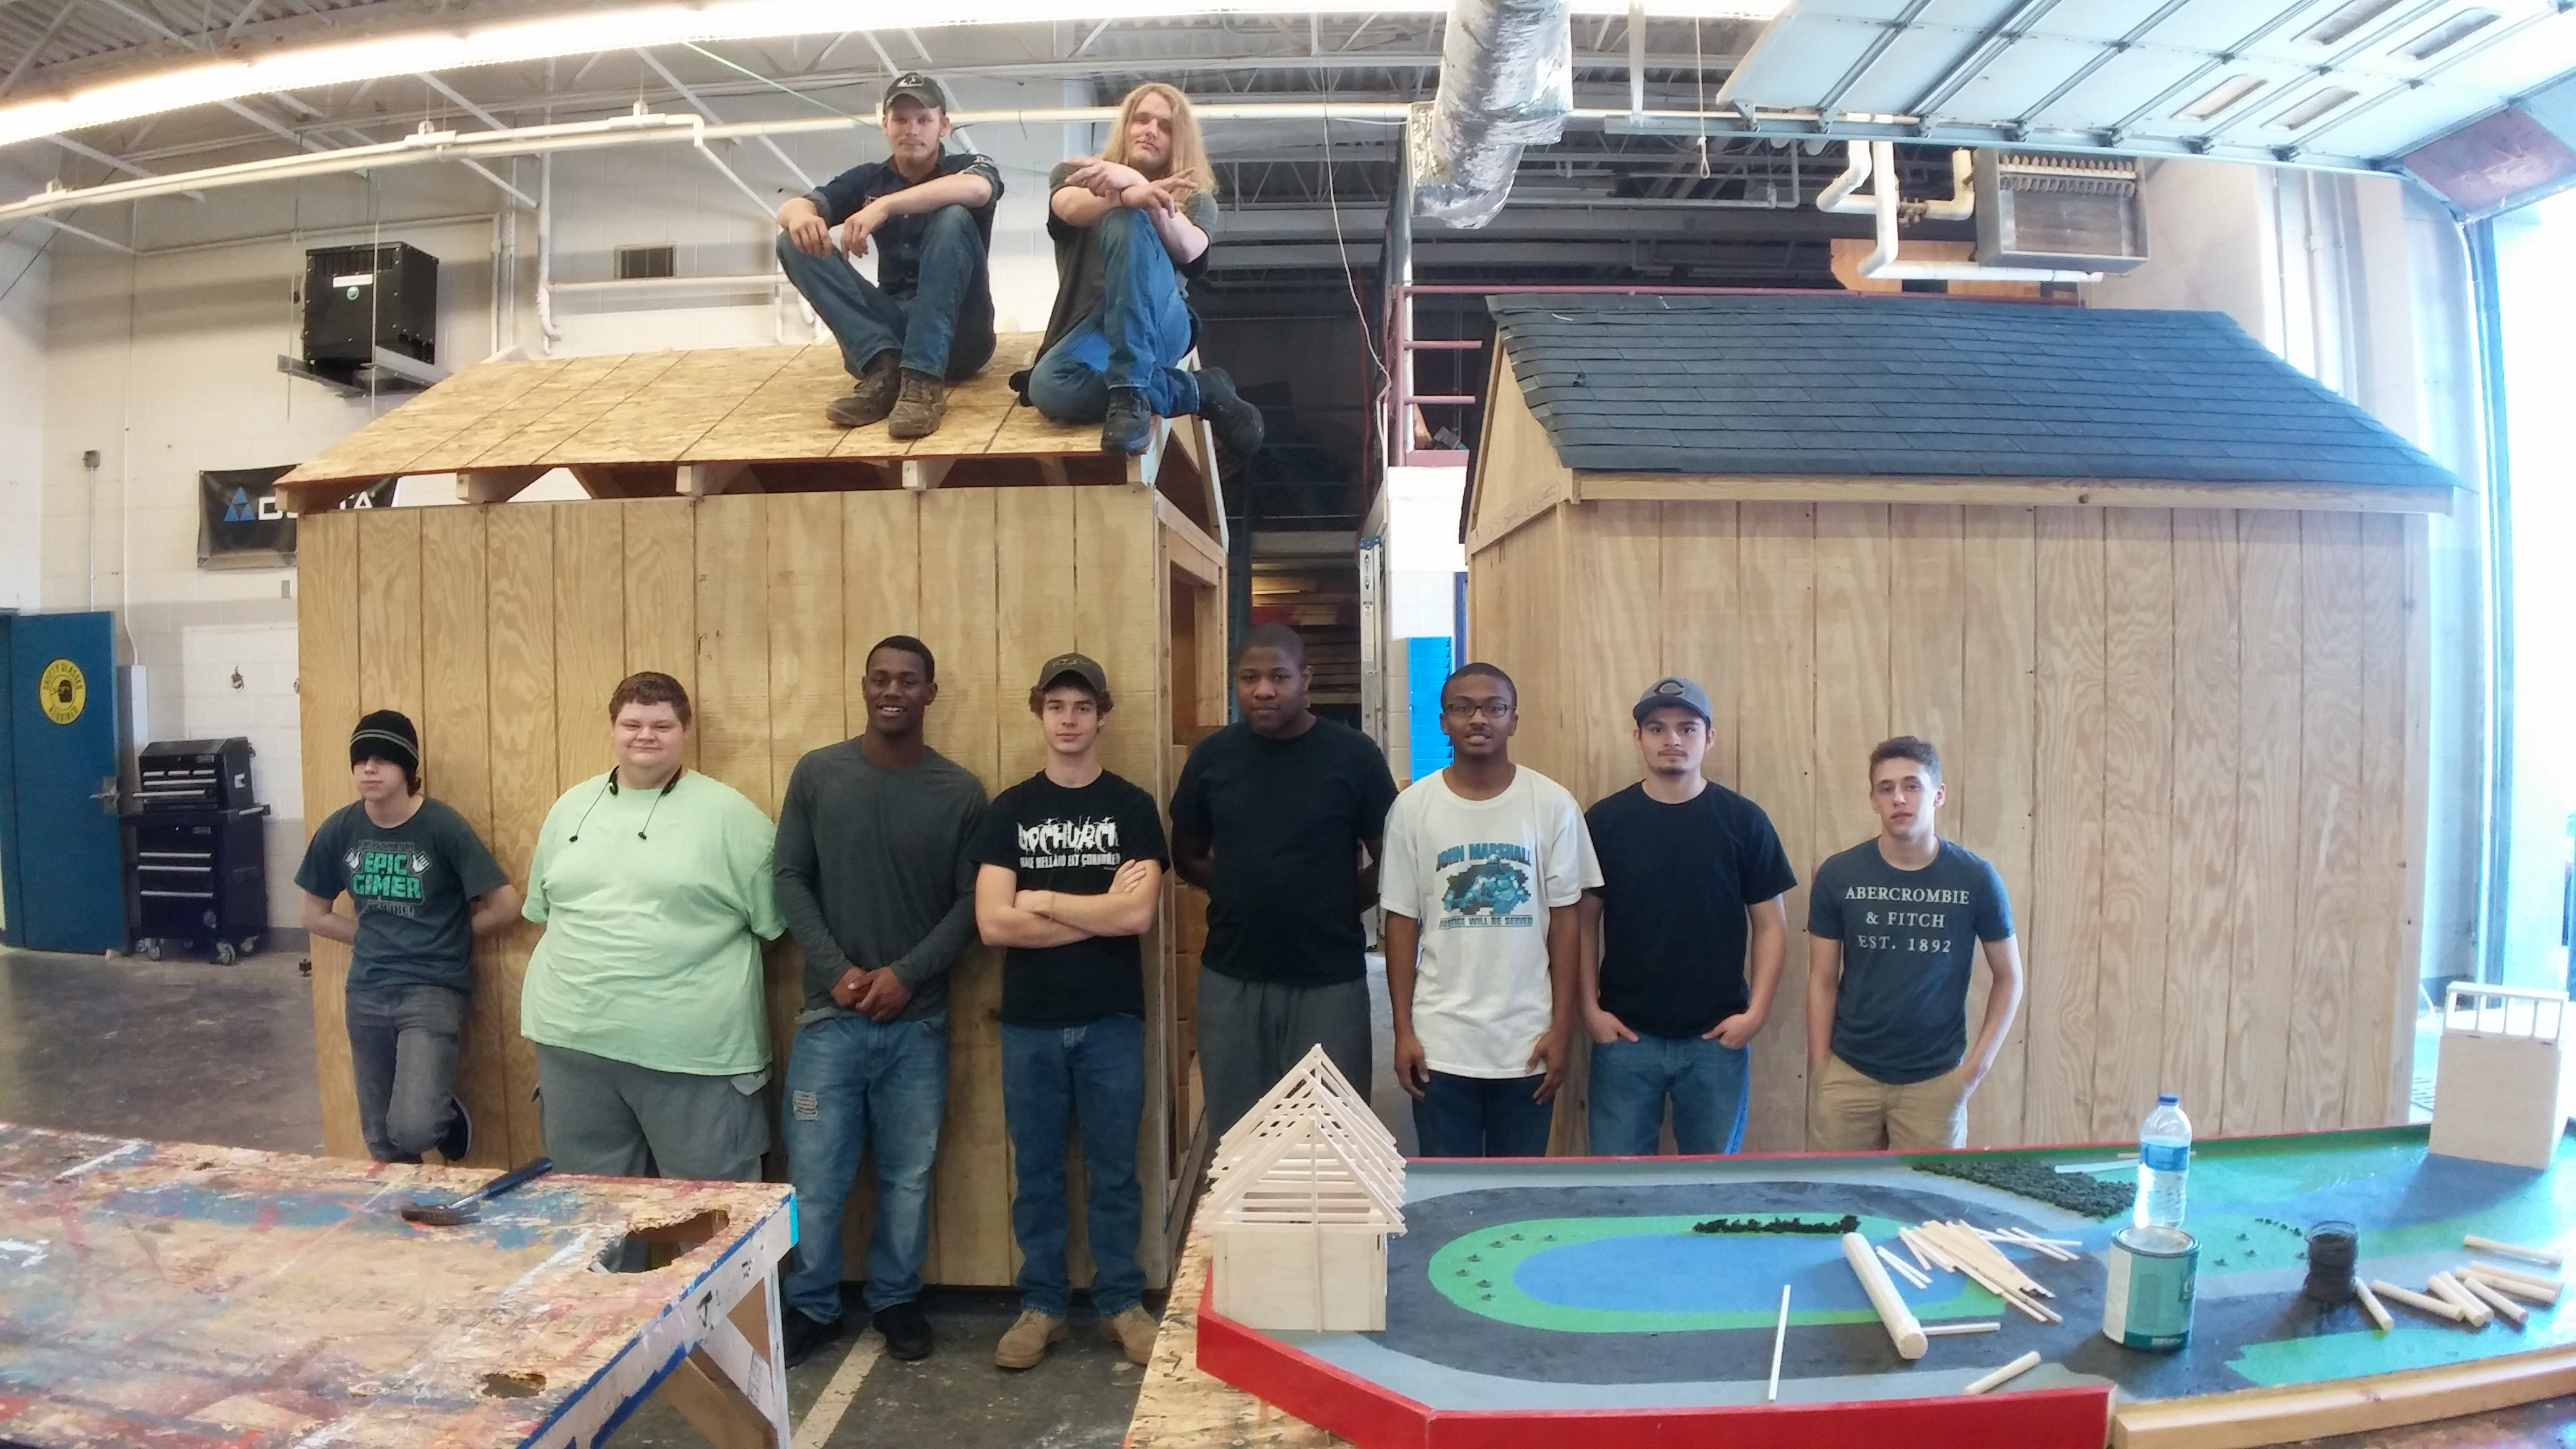 Cumberland students build more sheds